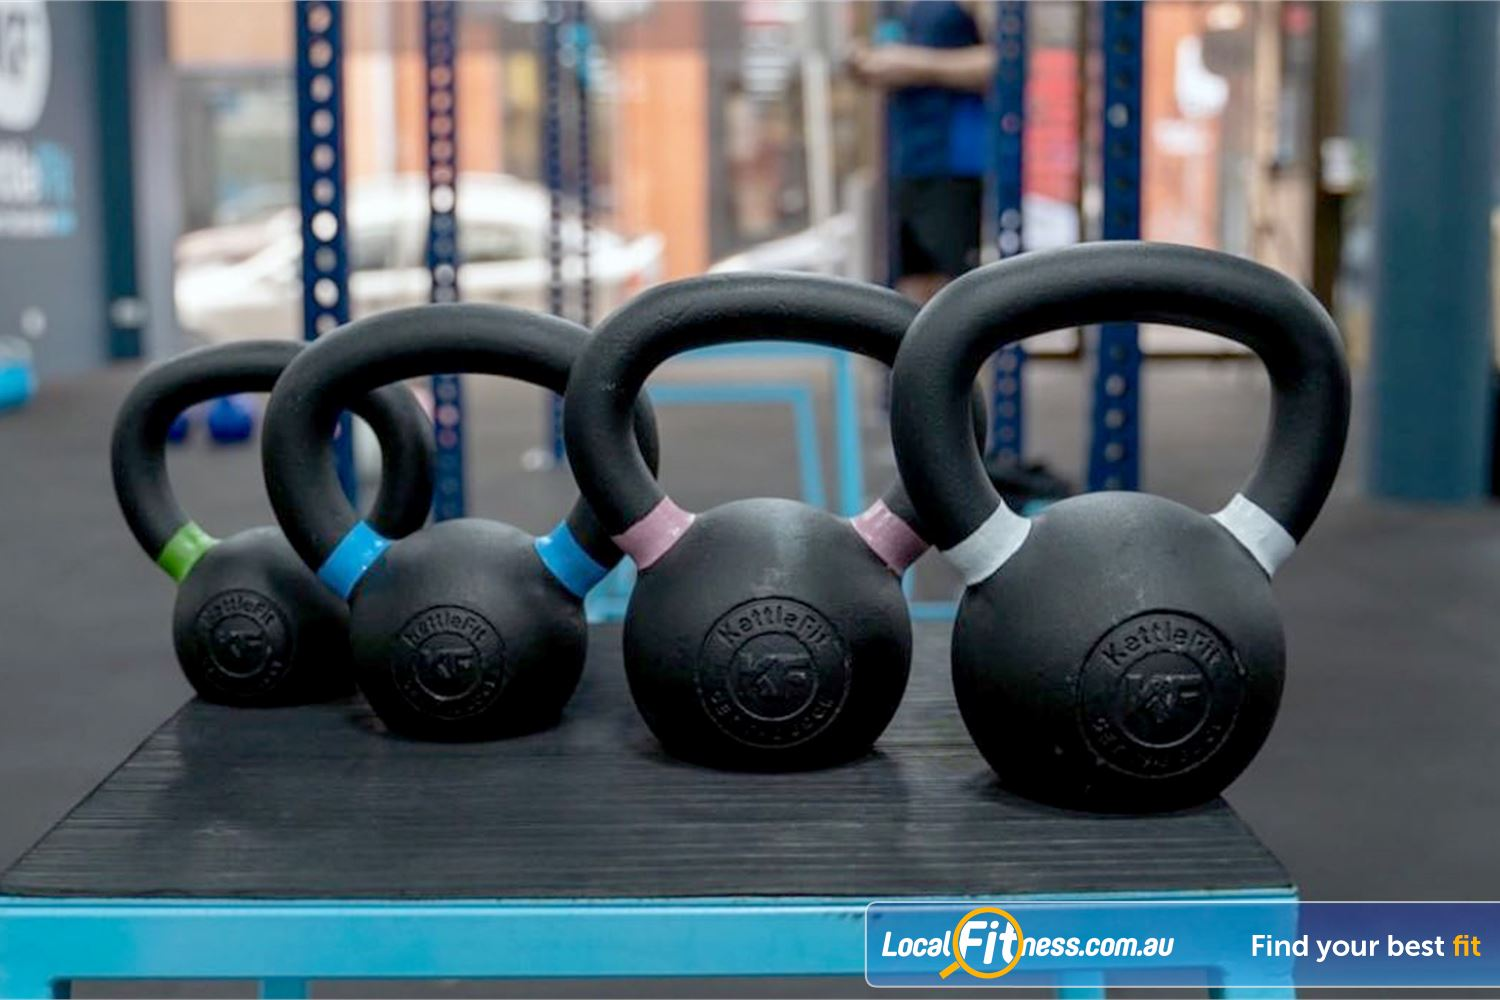 KettleFit Near St Kilda East We have Kettlebells that cater for beginners all the way up to advanced trainers.